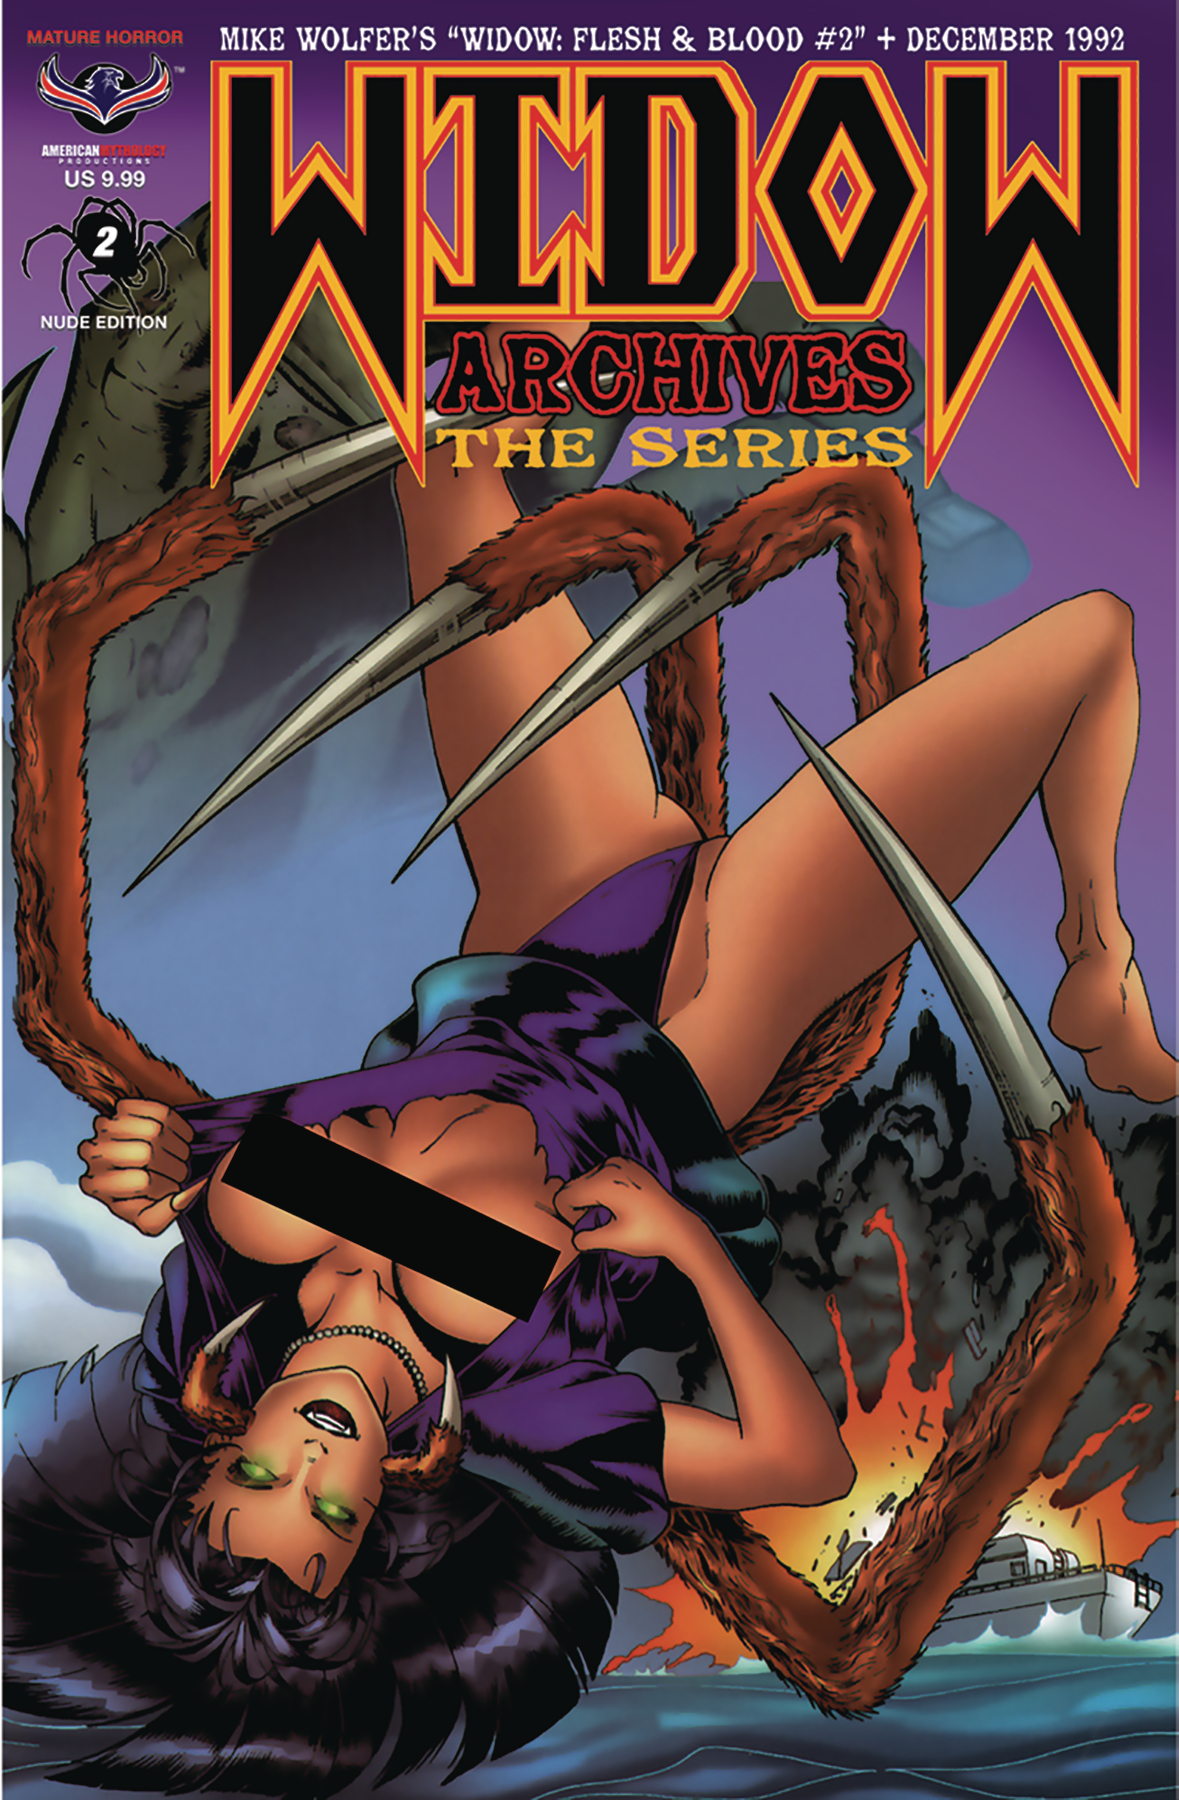 feb181072 - widow archives the series #2 nude cover edition